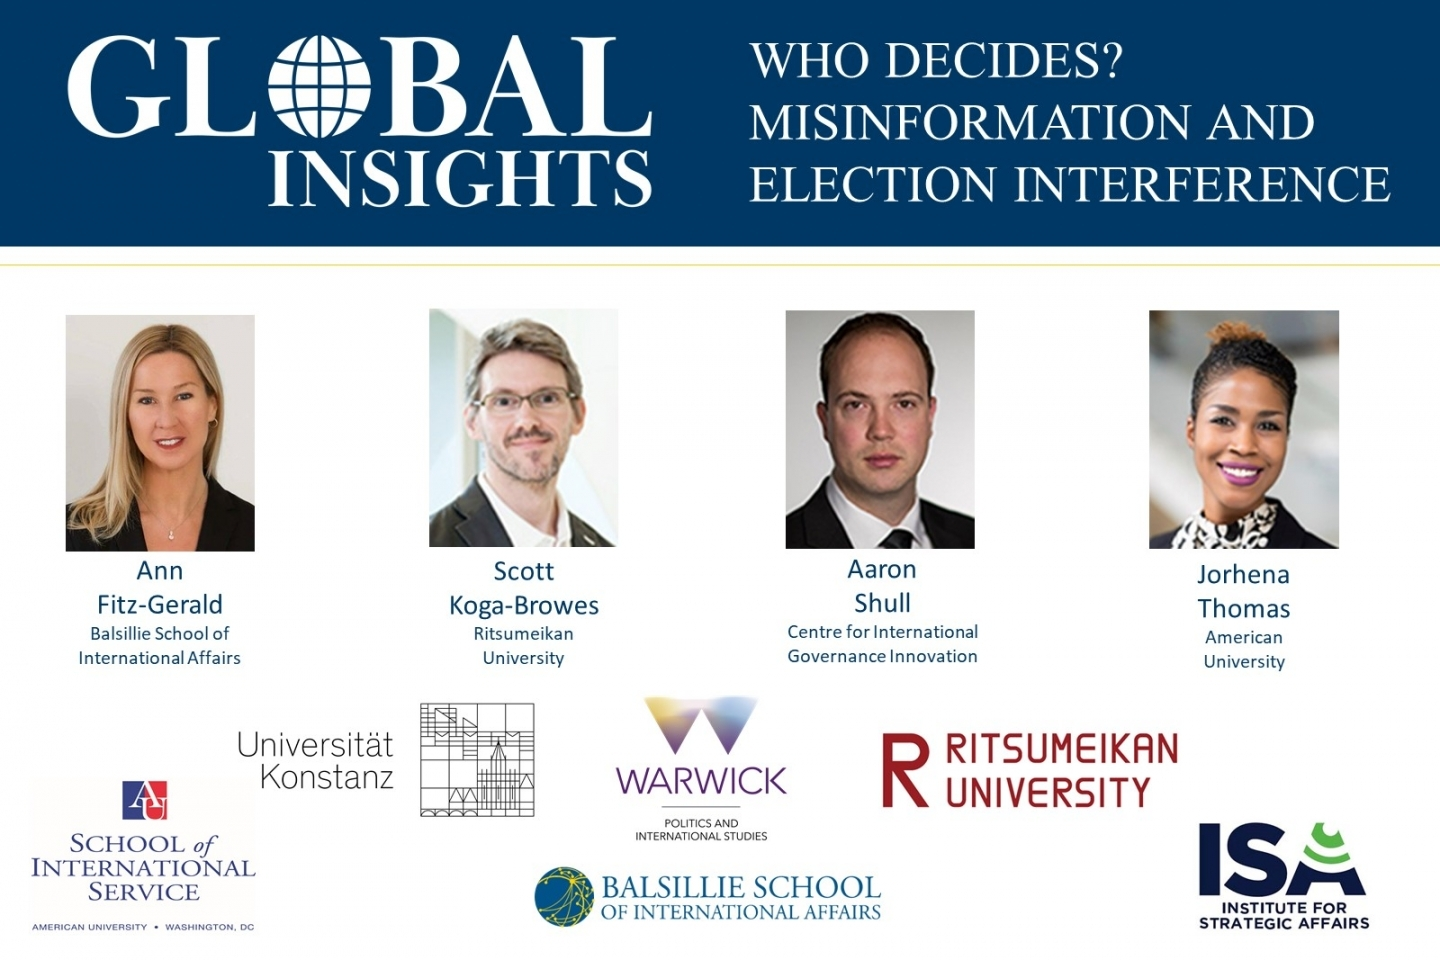 Global Insights: Who Decides? Misinformation and Election Interference